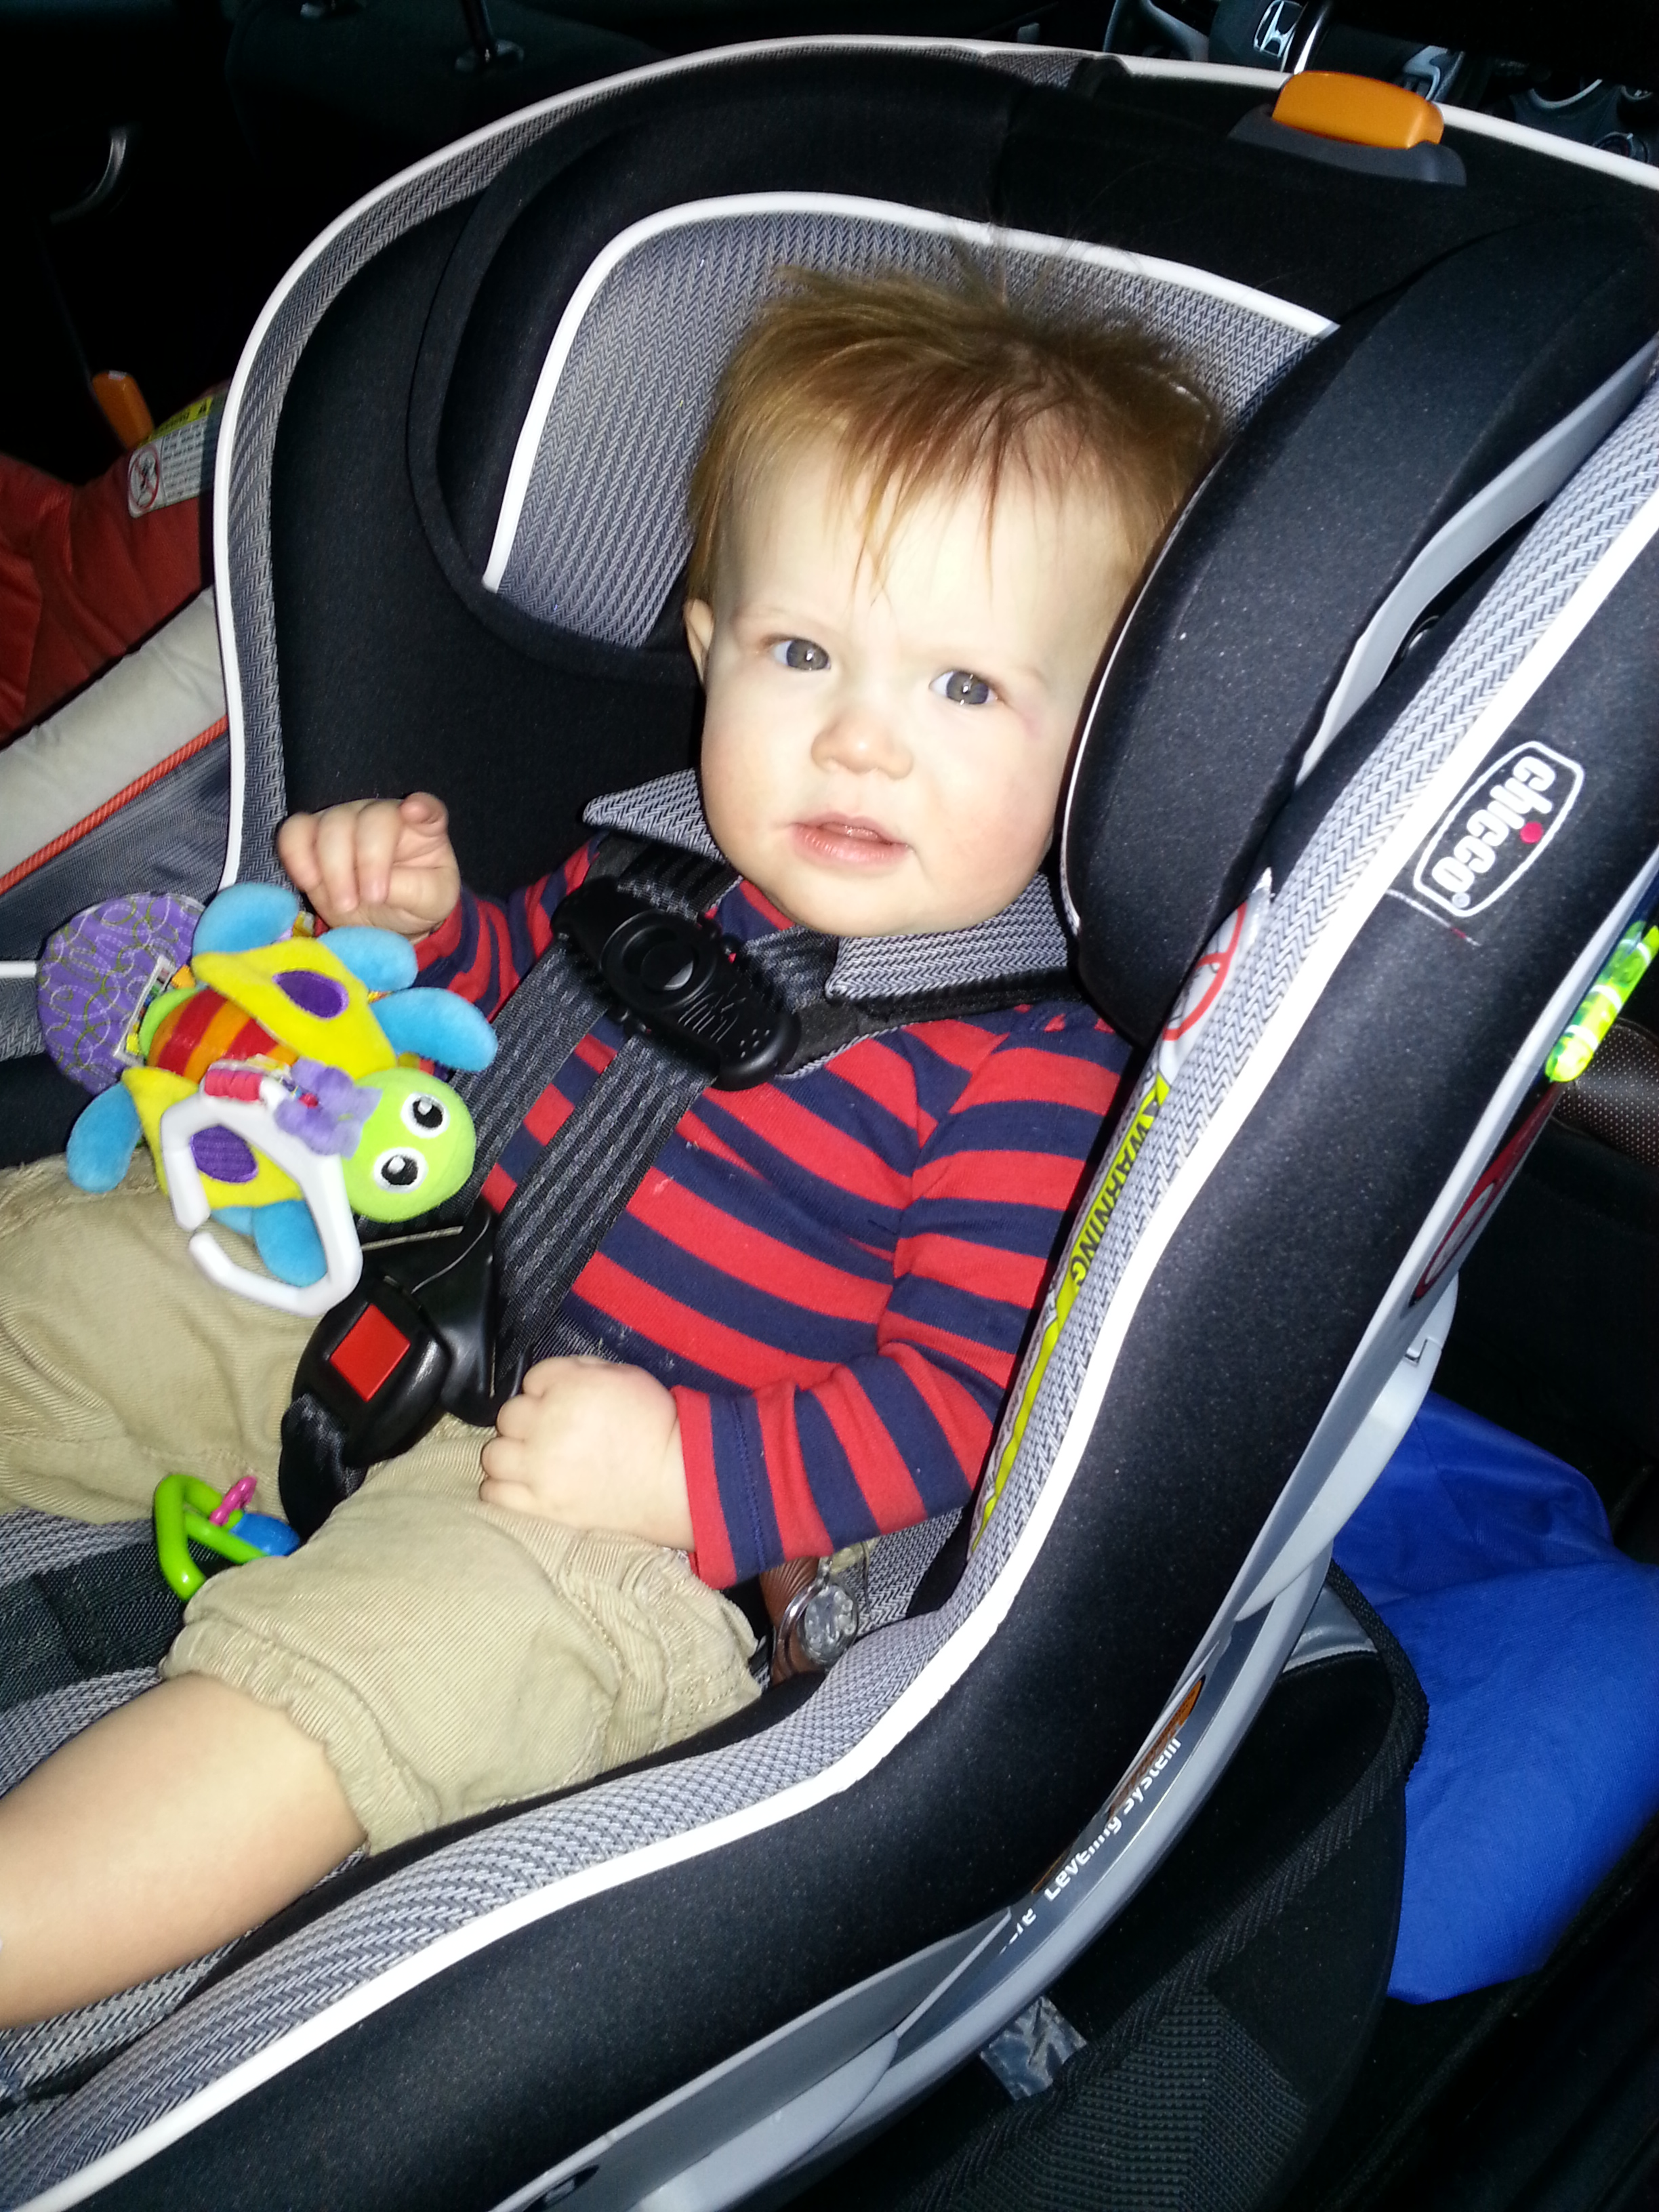 Chicco NextFit Convertible Carseat Review Leave A Comment Daxton Sitting In His New Ride